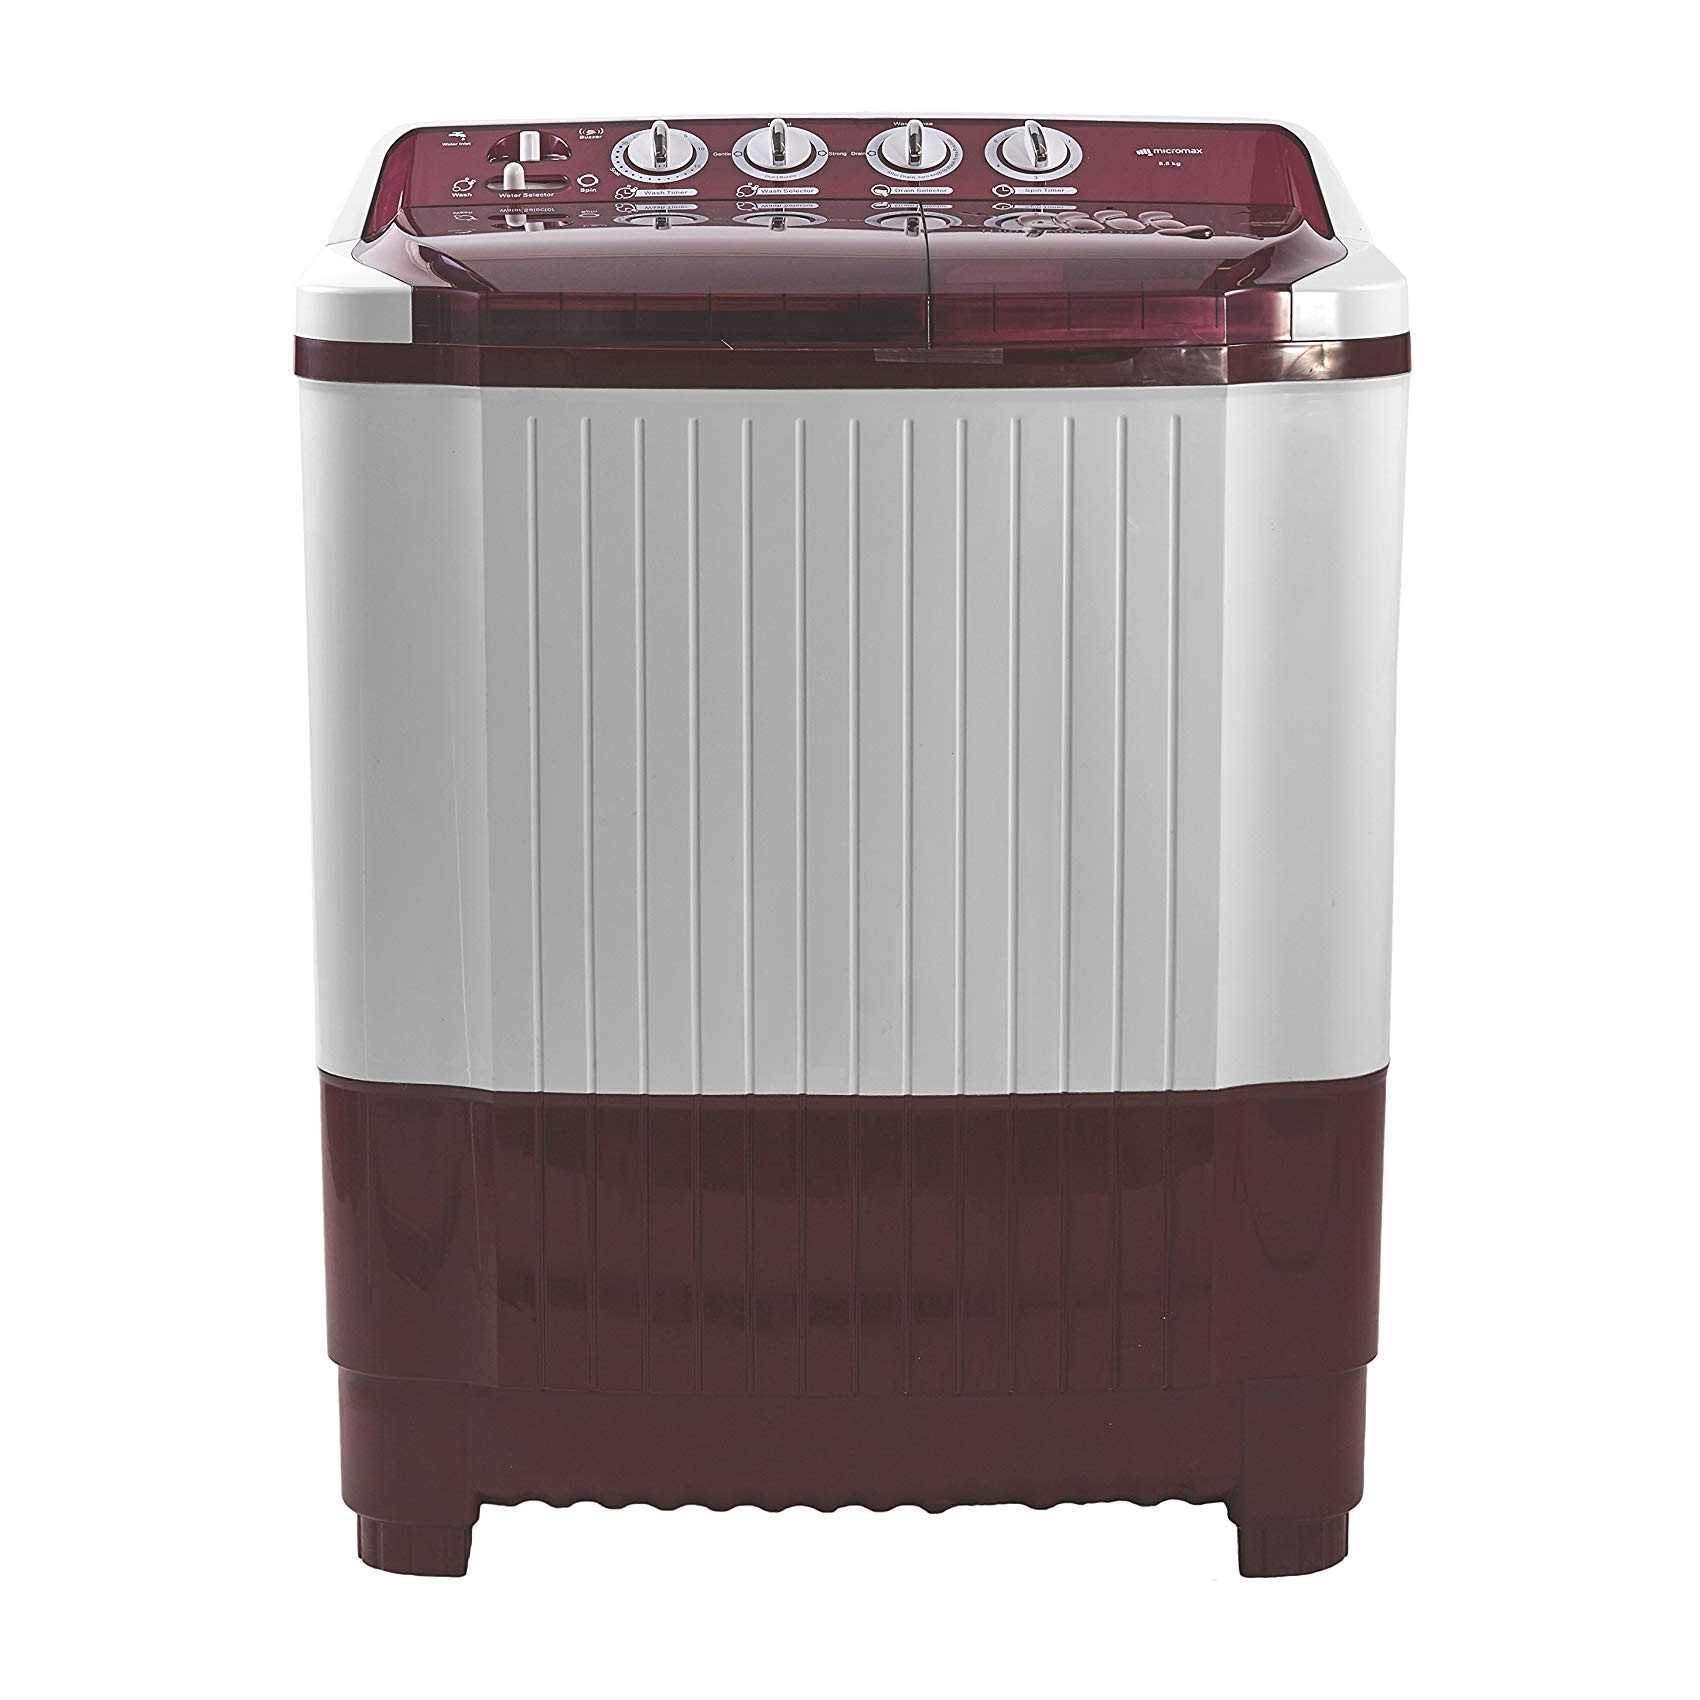 Micromax MWMSA855TVRS1 8.5 kg Semi Automatic Top Loading Washing Machine